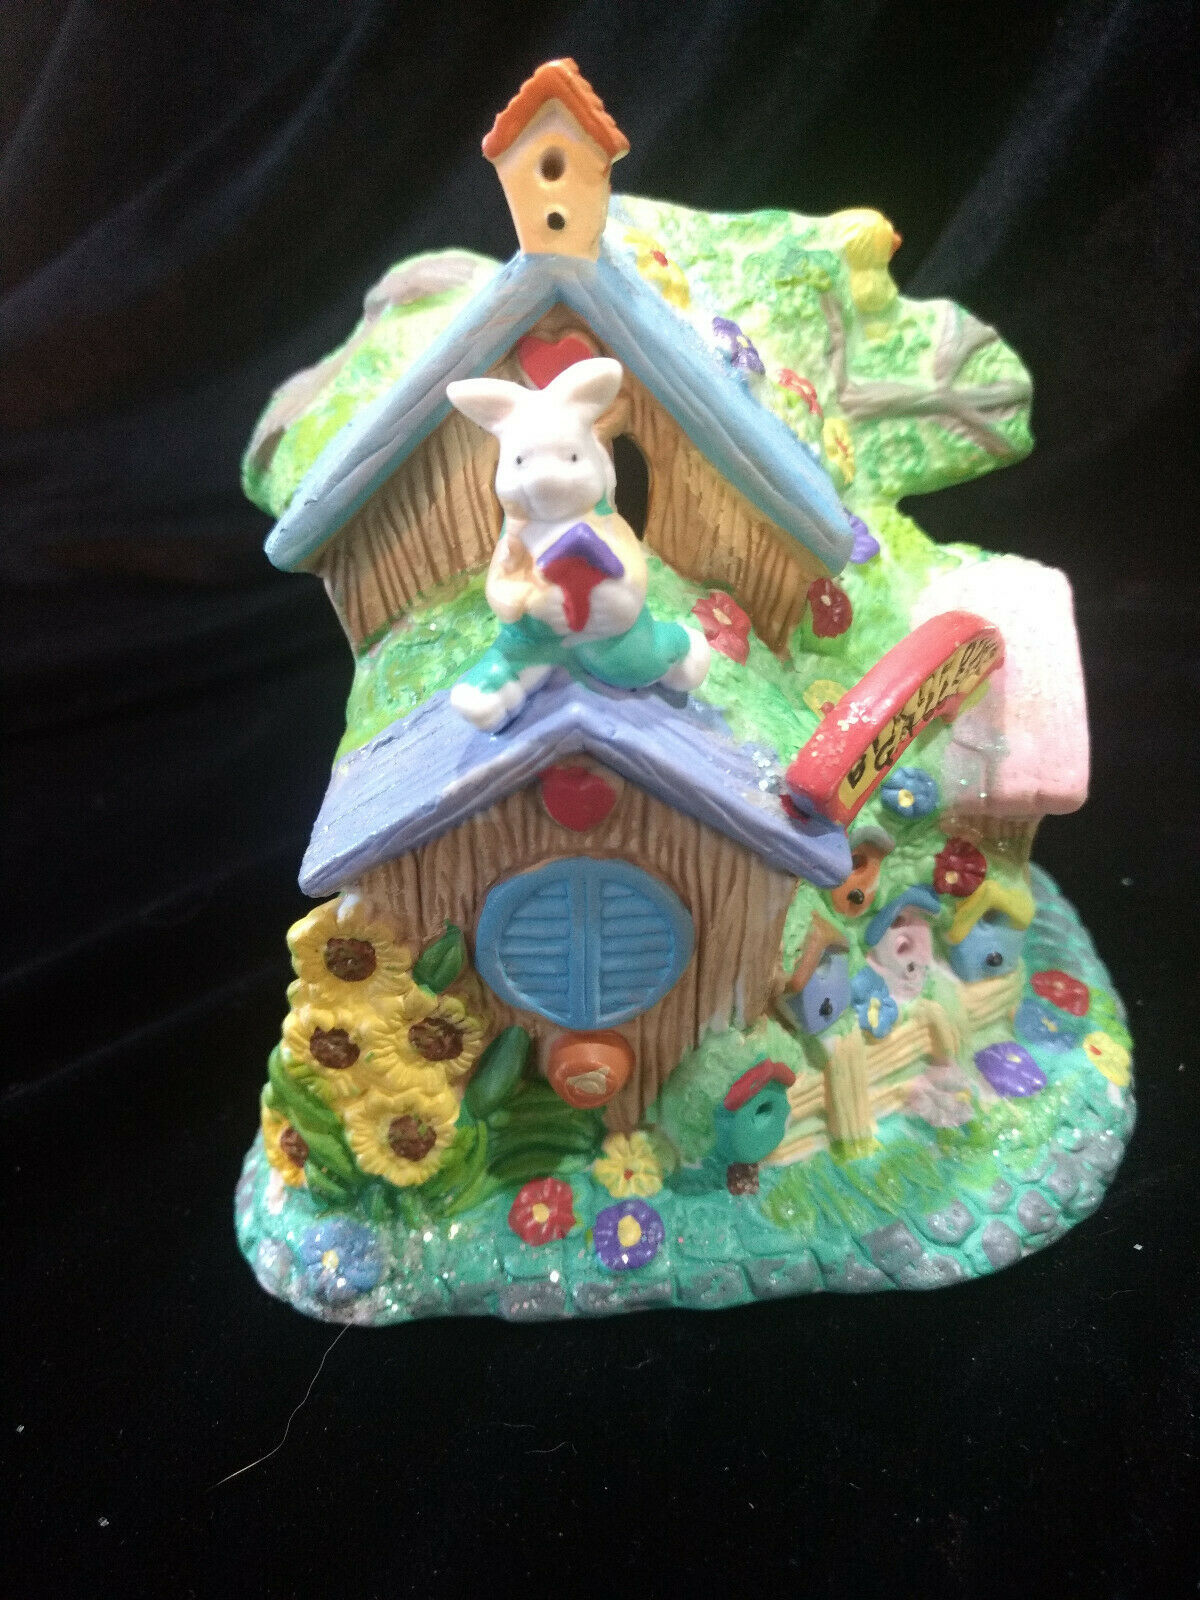 Hoppy Hollow Easter Village Ceramic Houses Set of Three (Lot #4) image 5